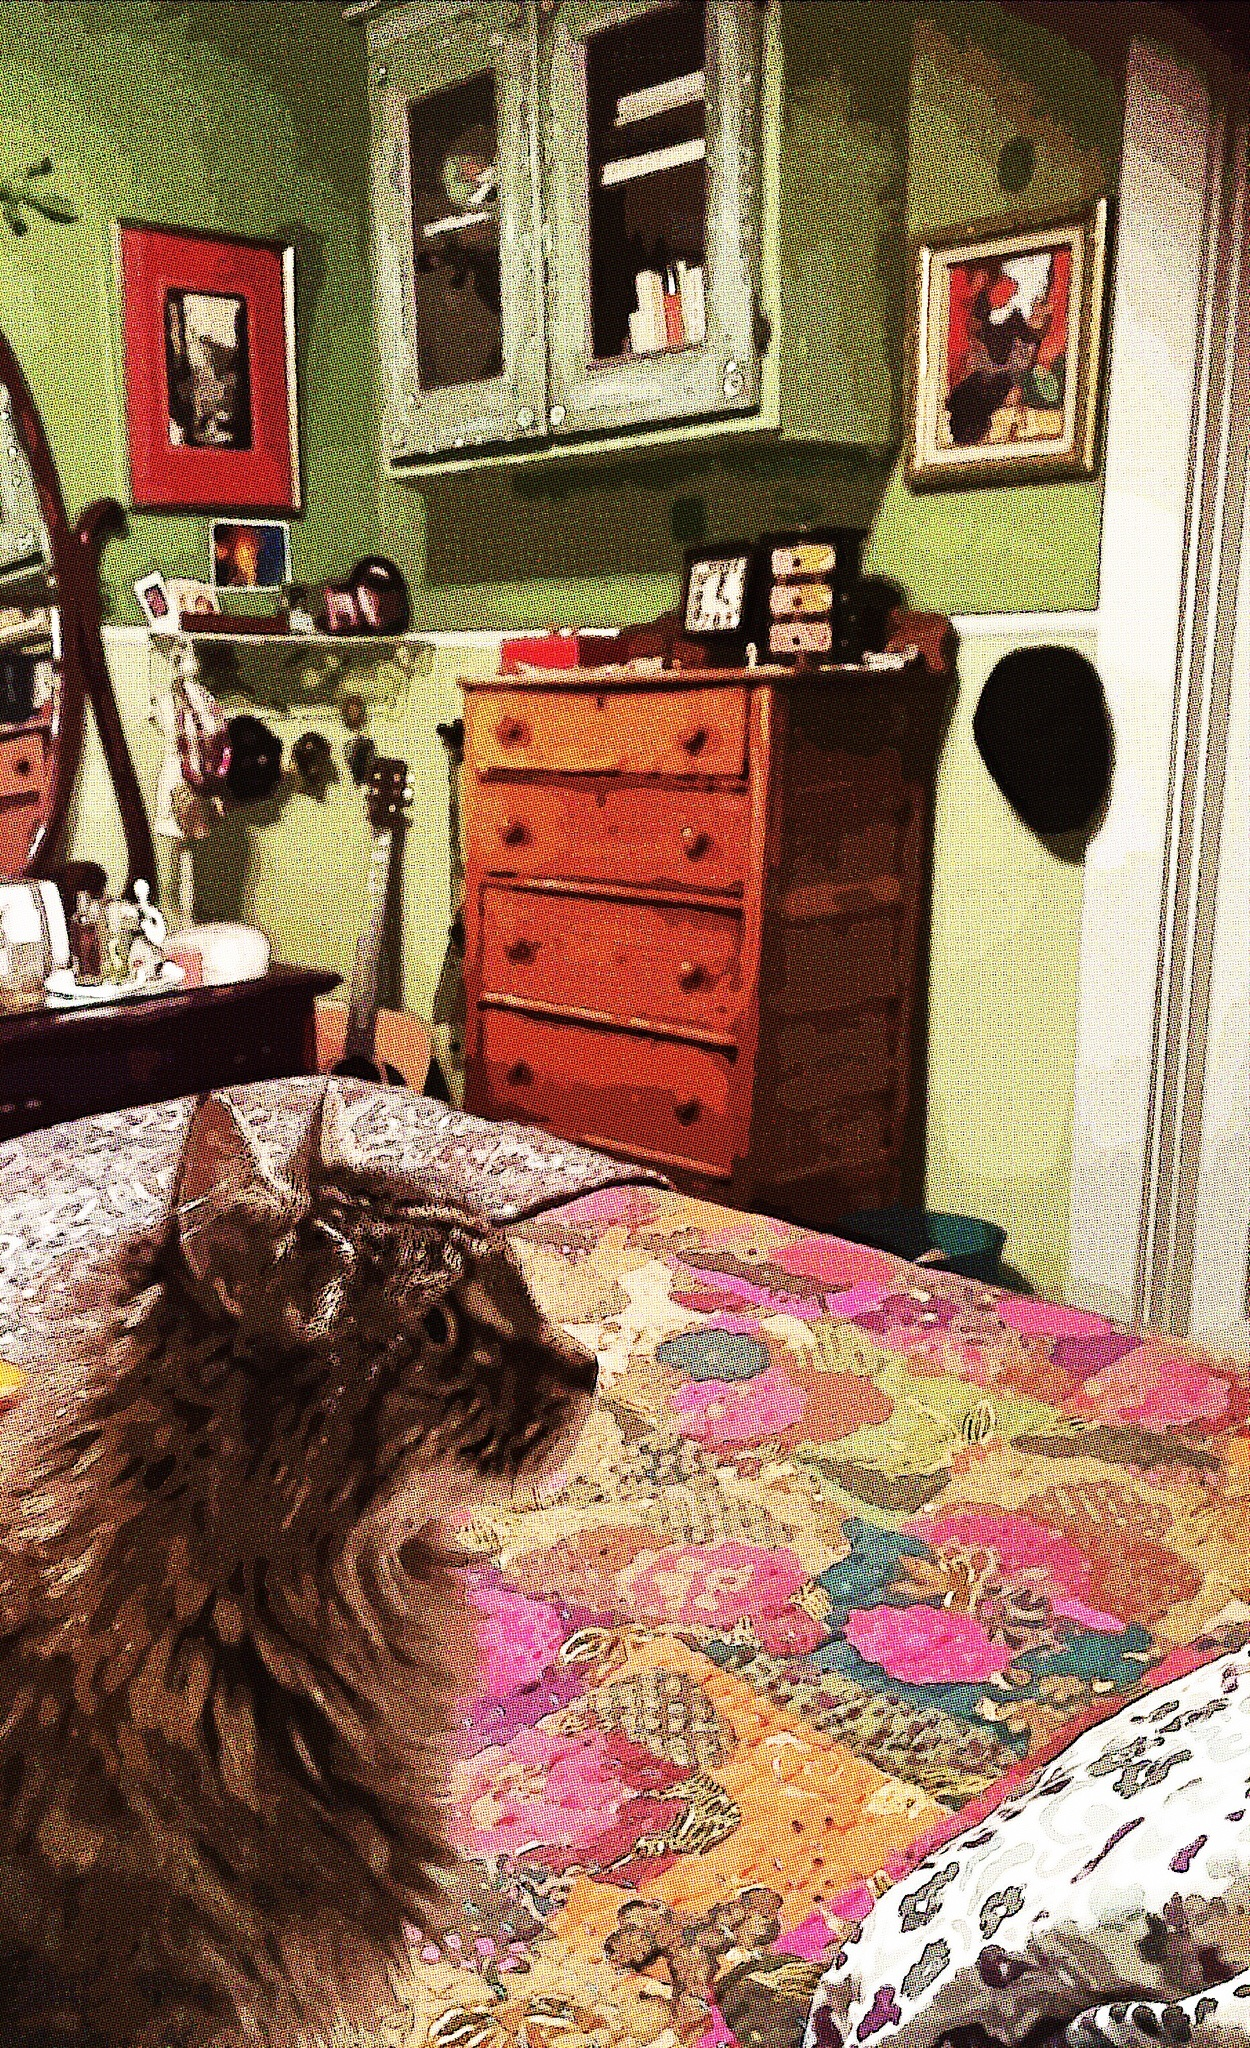 Bill Ponders the Layout of the Room by cathy.pepe.9